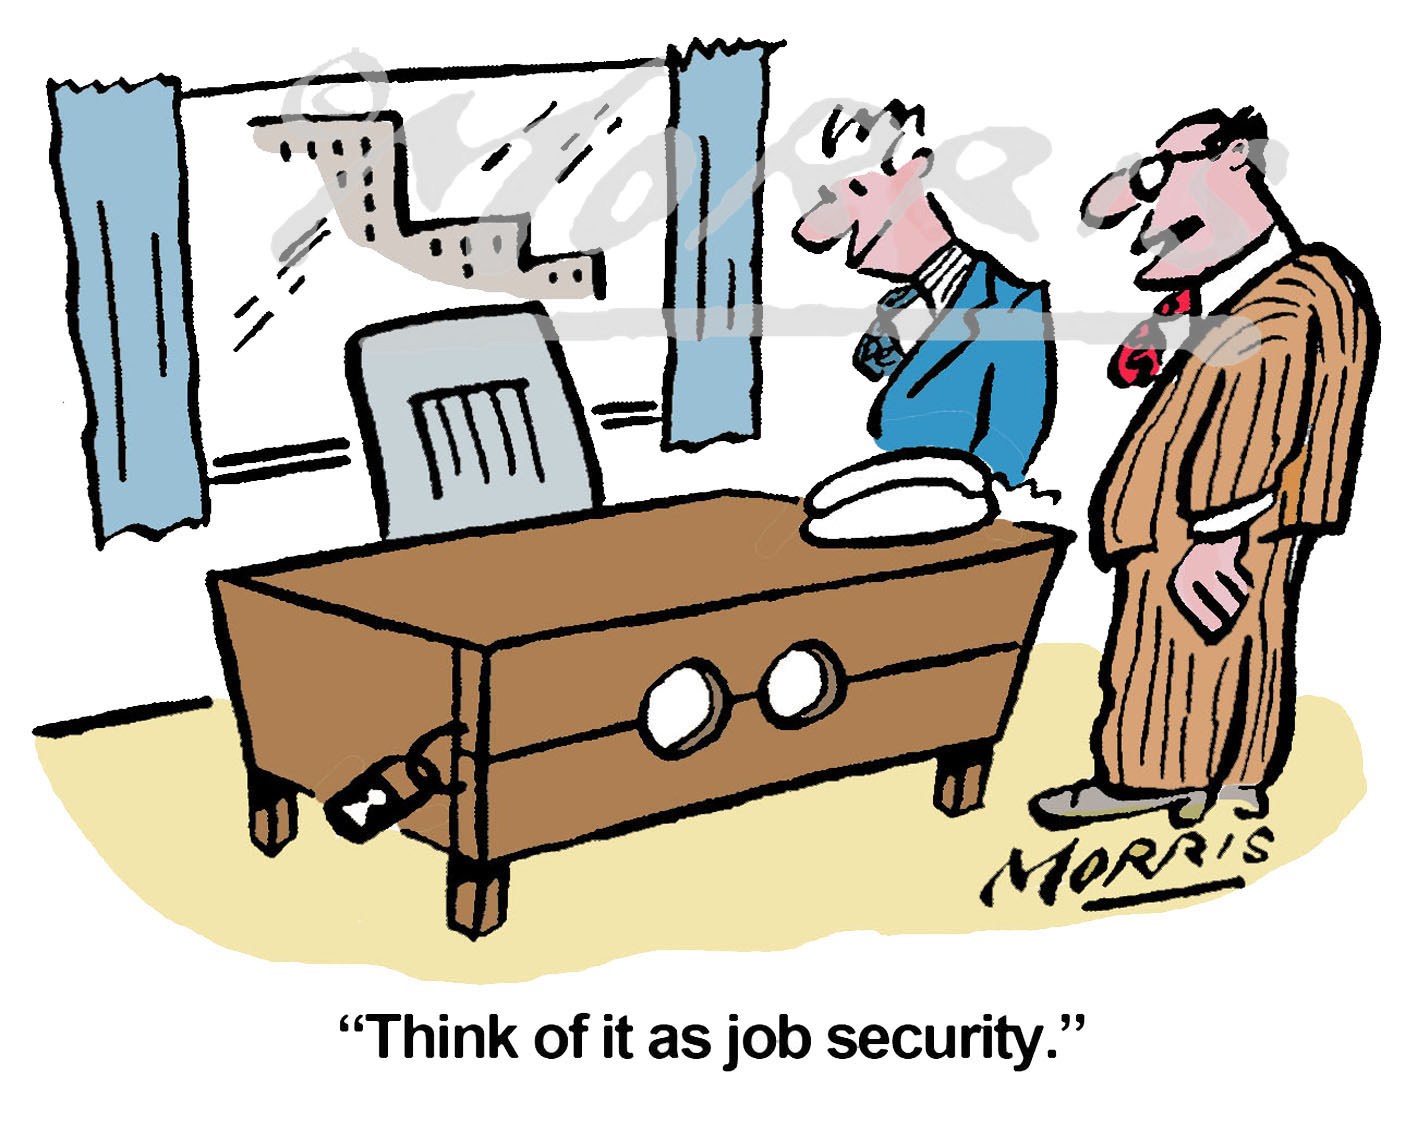 Job security cartoon, office cartoon – Ref: 7381col